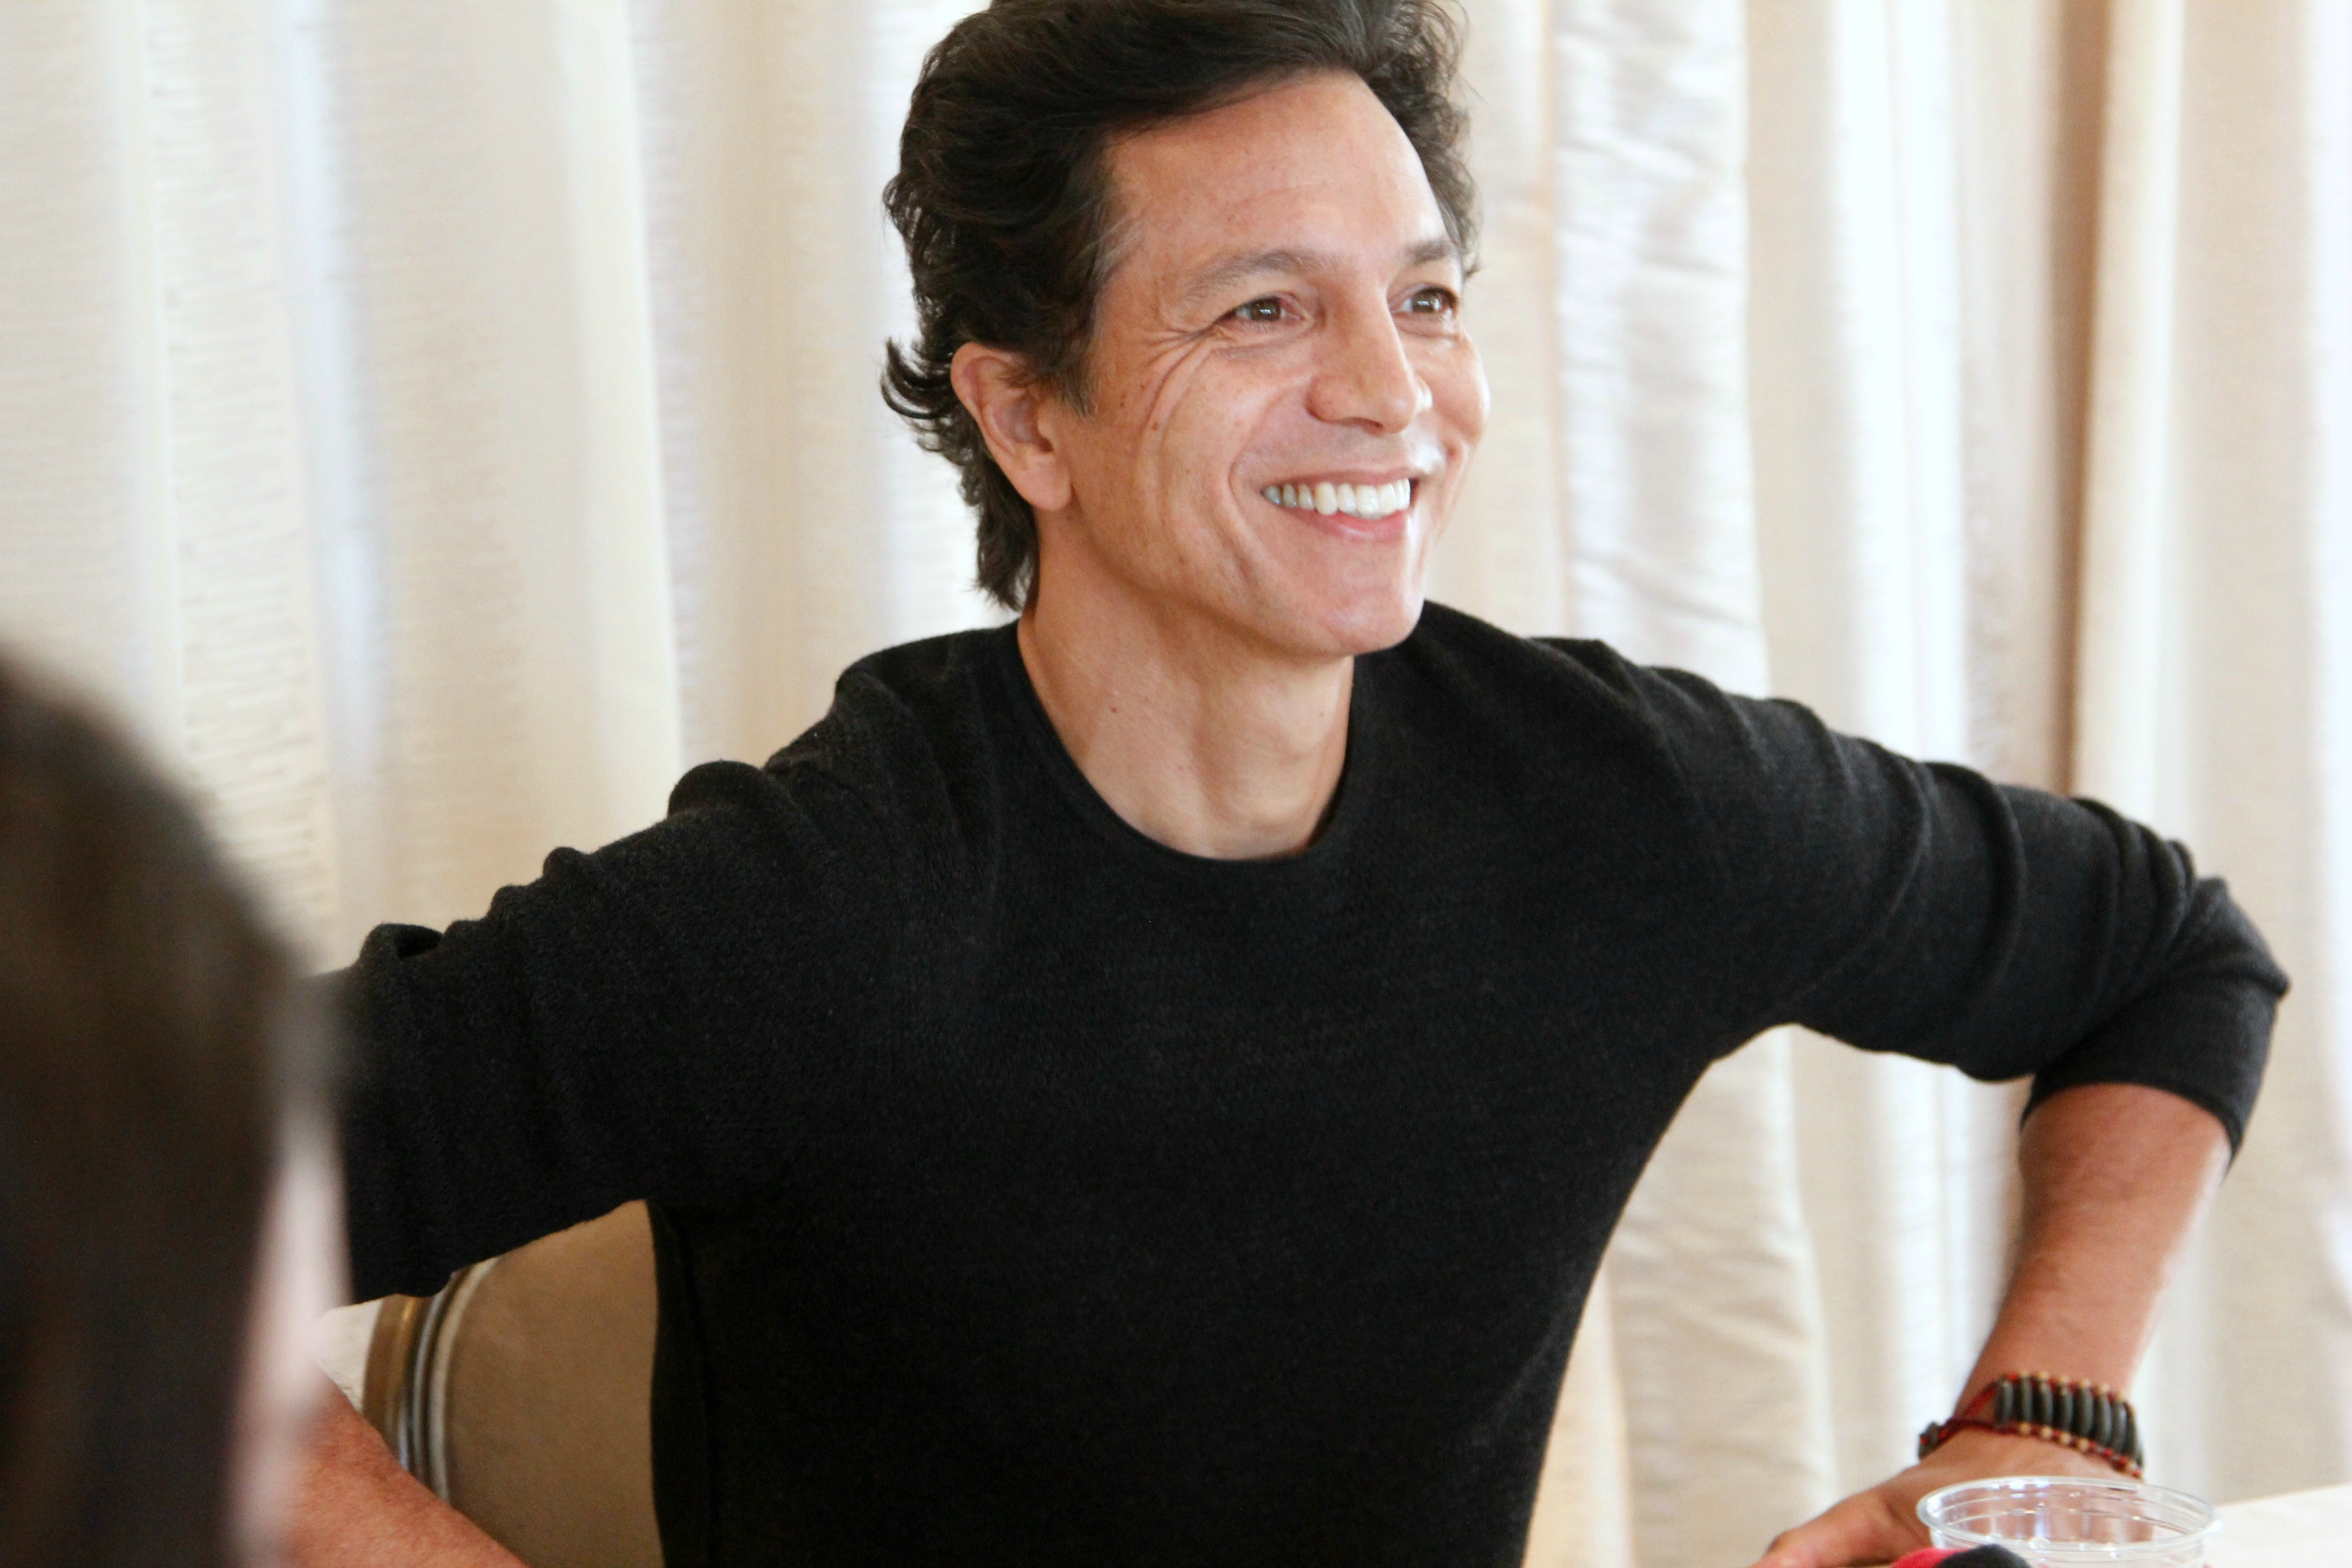 Chatting with Benjamin Bratt about Coco